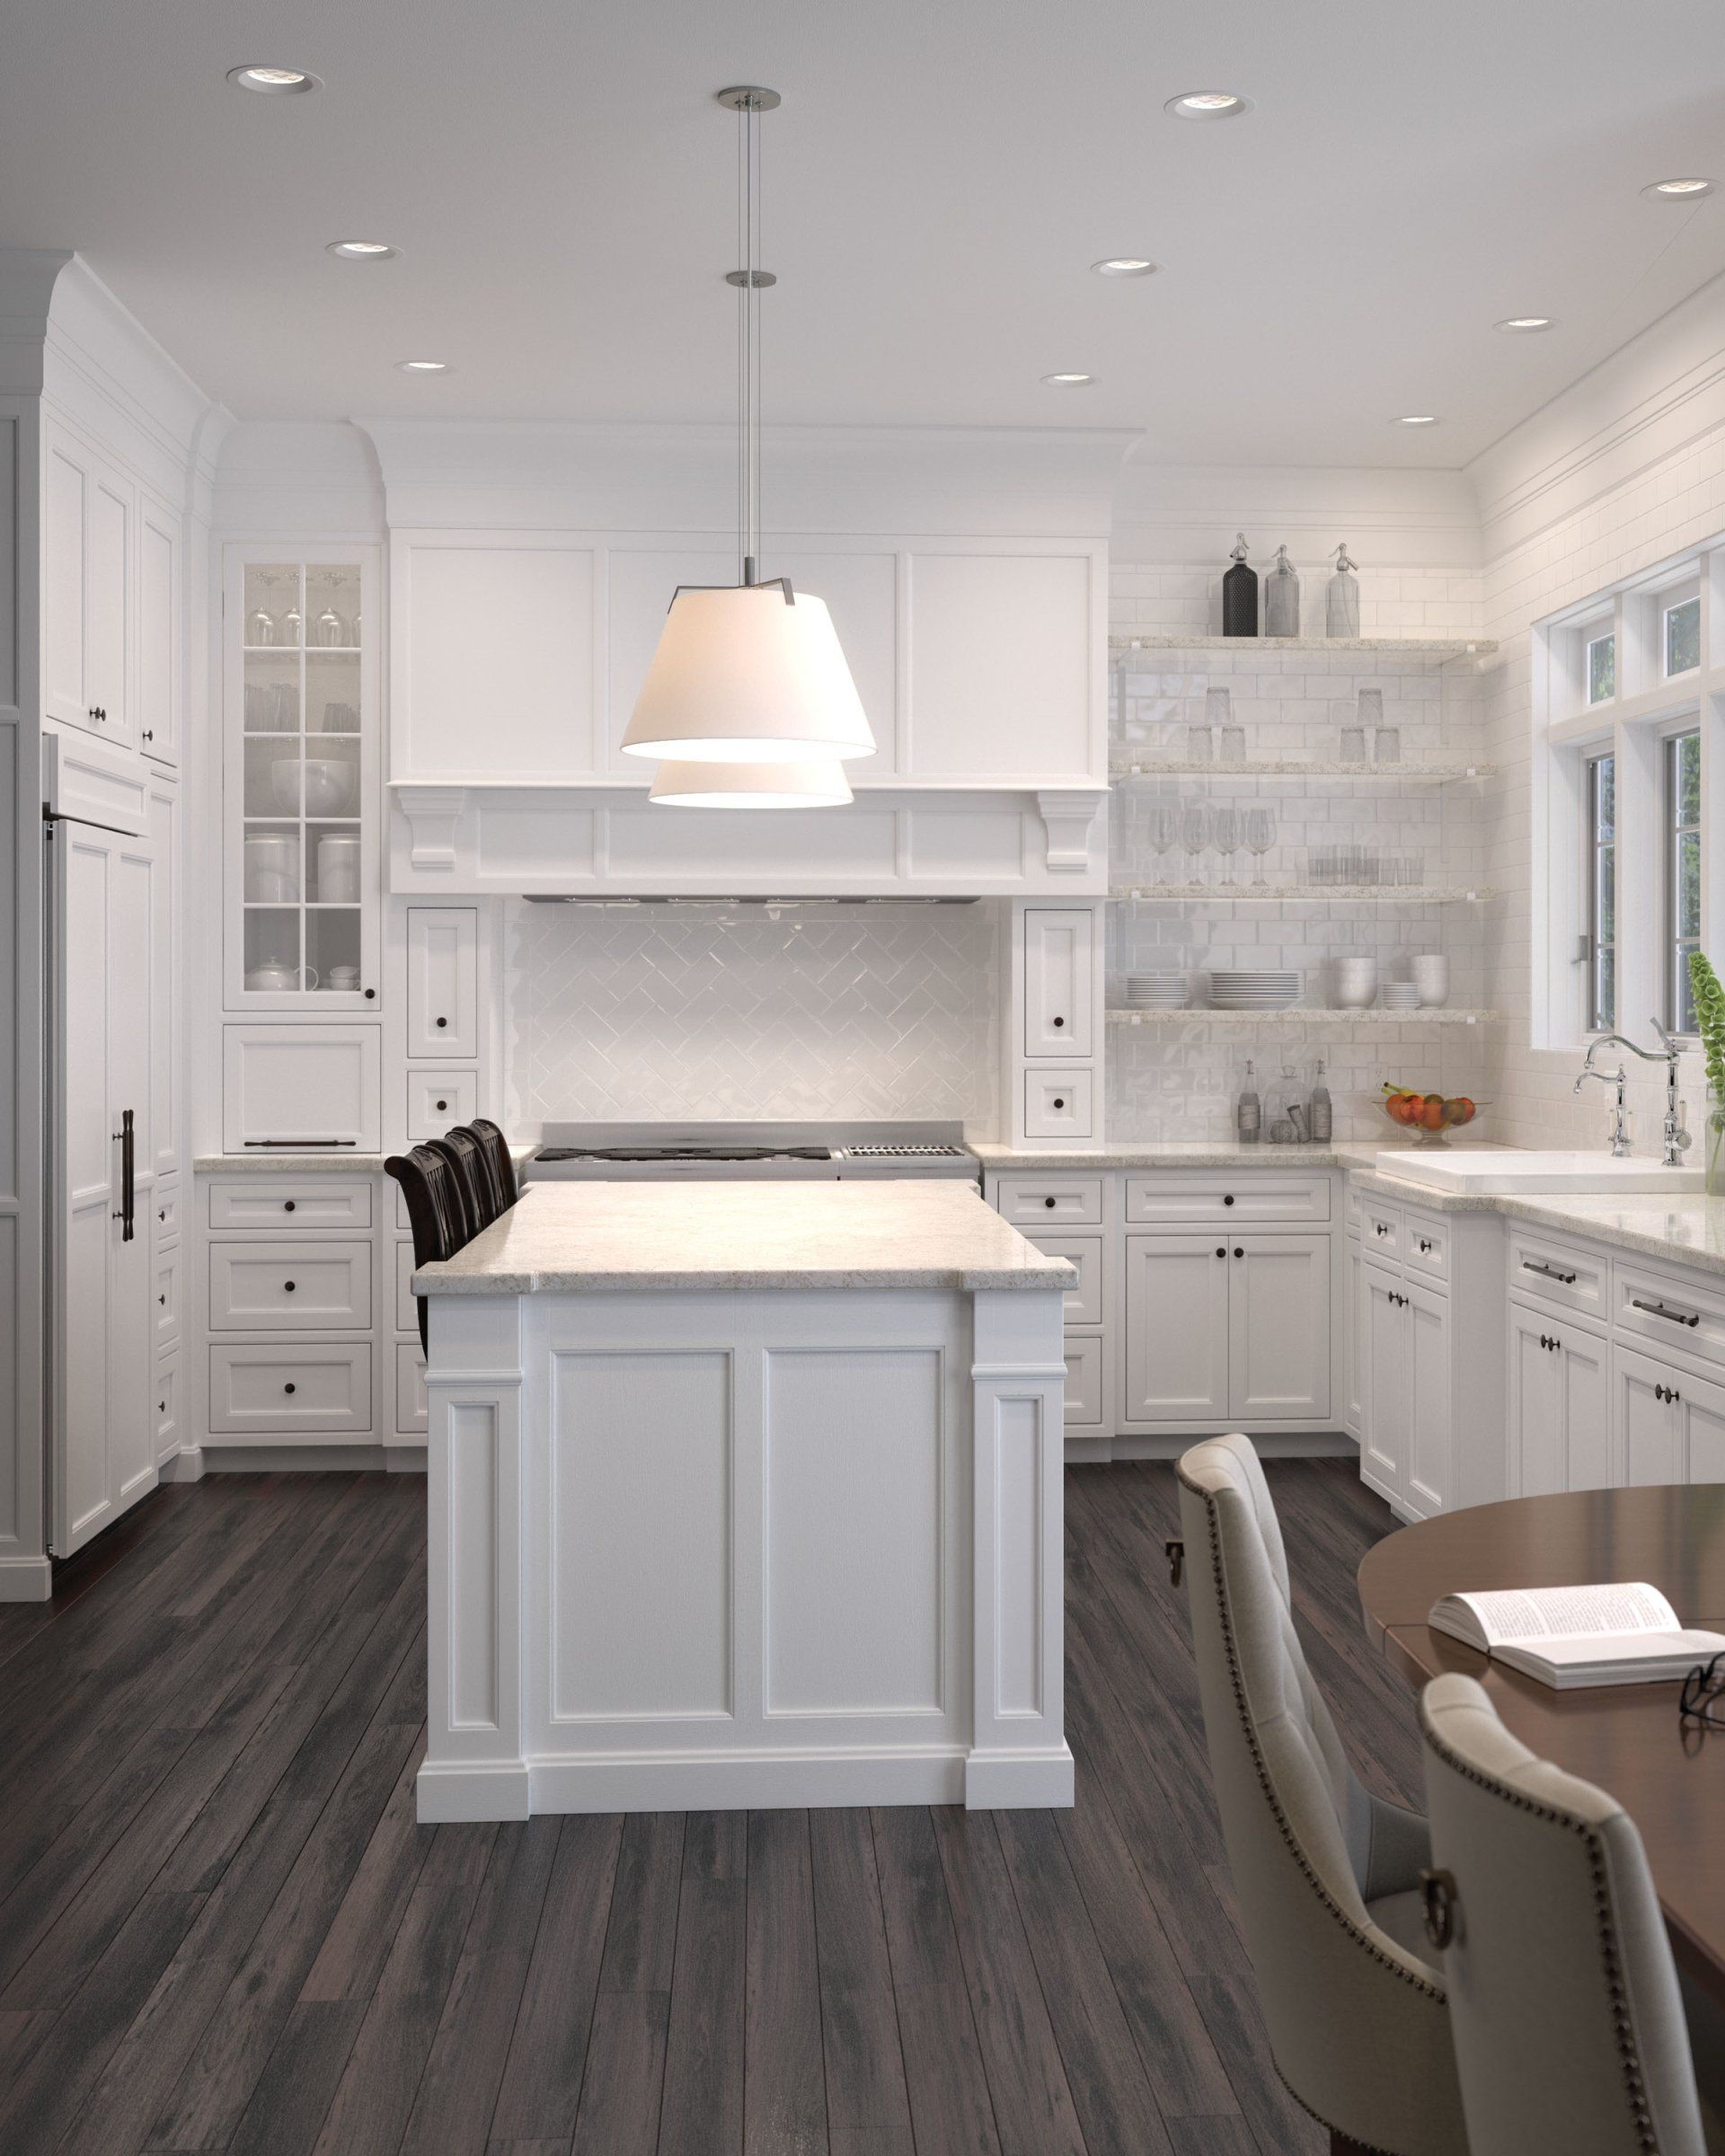 kitchen lighting tip a bright ceiling